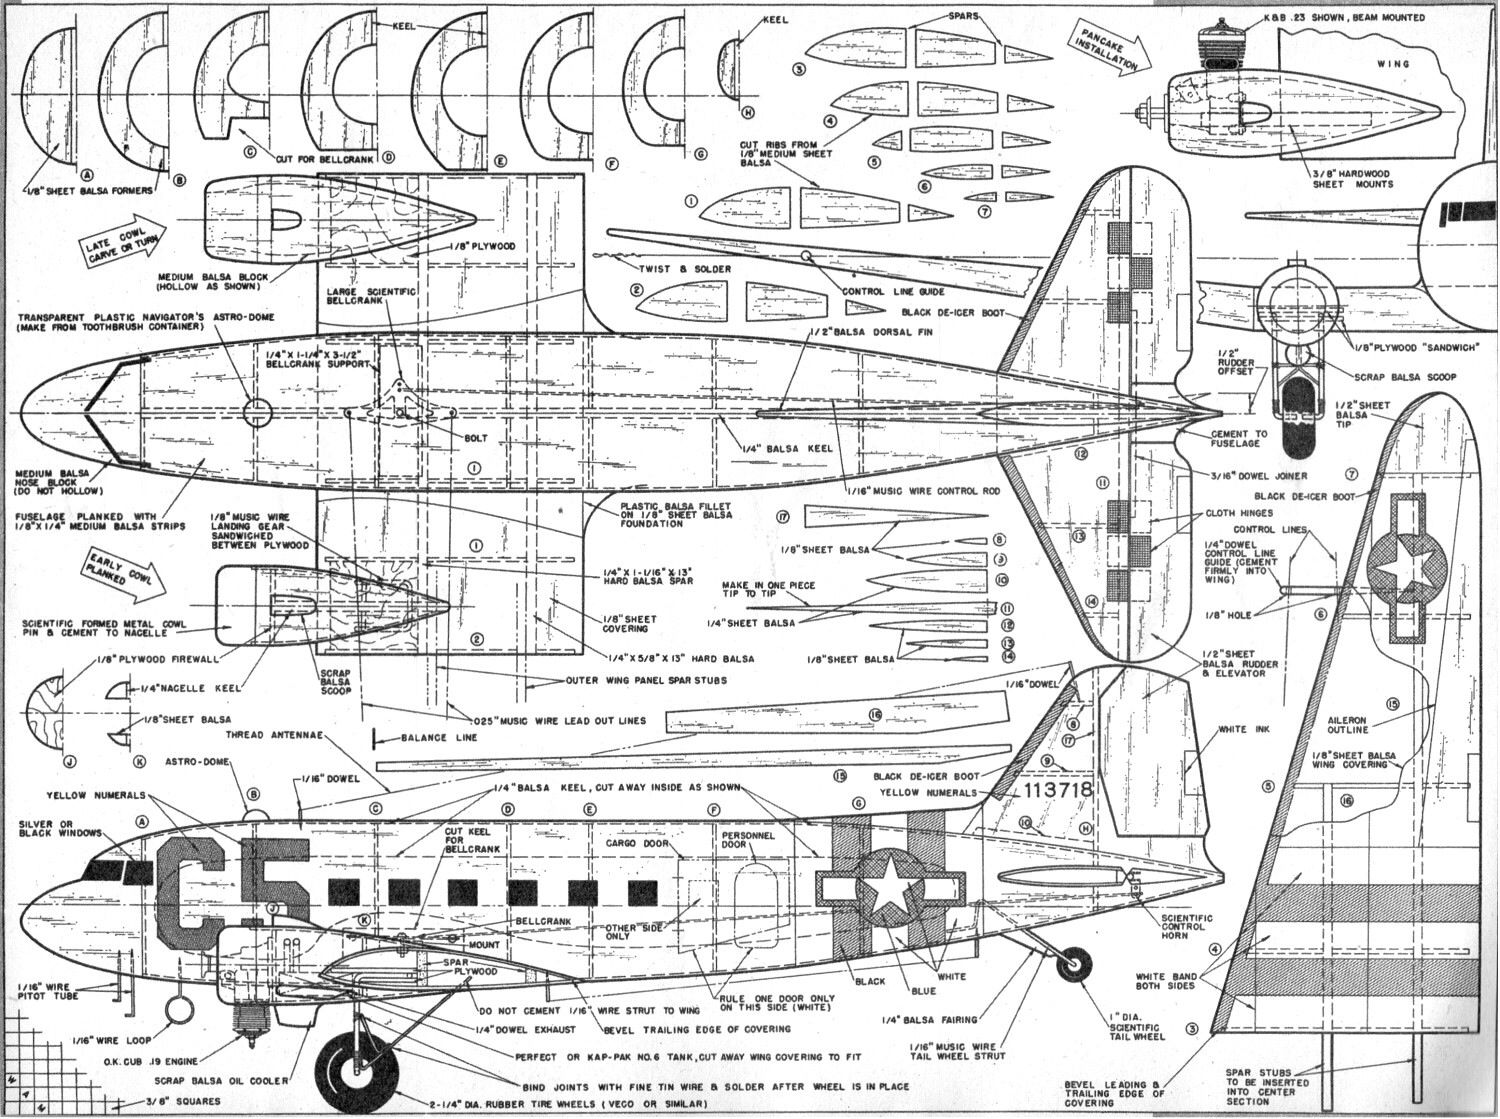 Pin by Ring Wu on 航空航天   Pinterest   Planes, Aircraft and ...